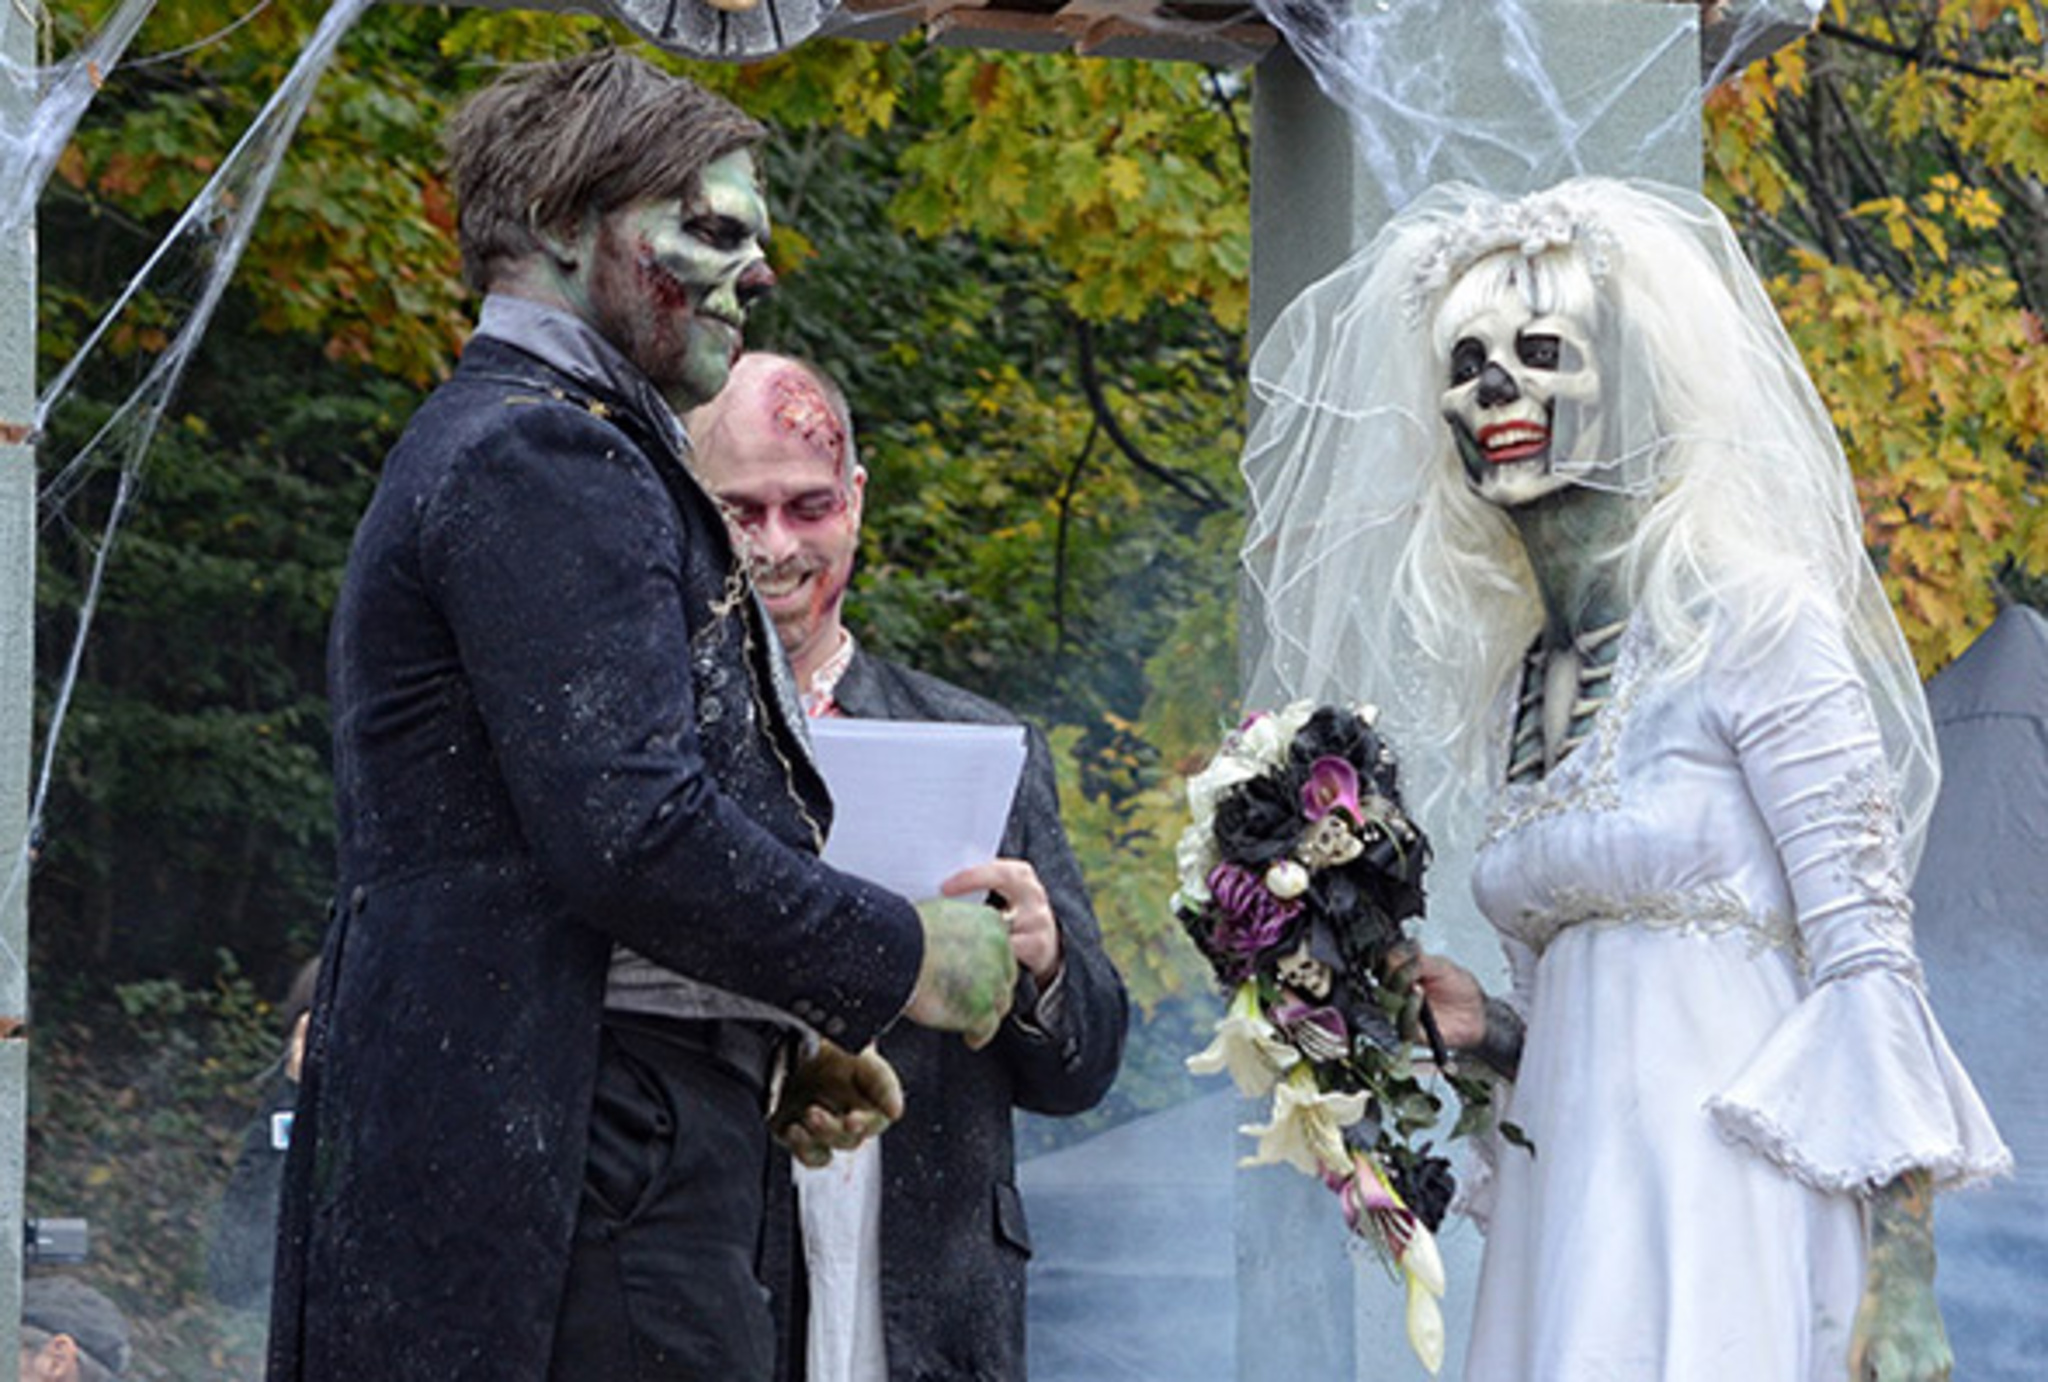 This Is What A Zombie Wedding Looks Like